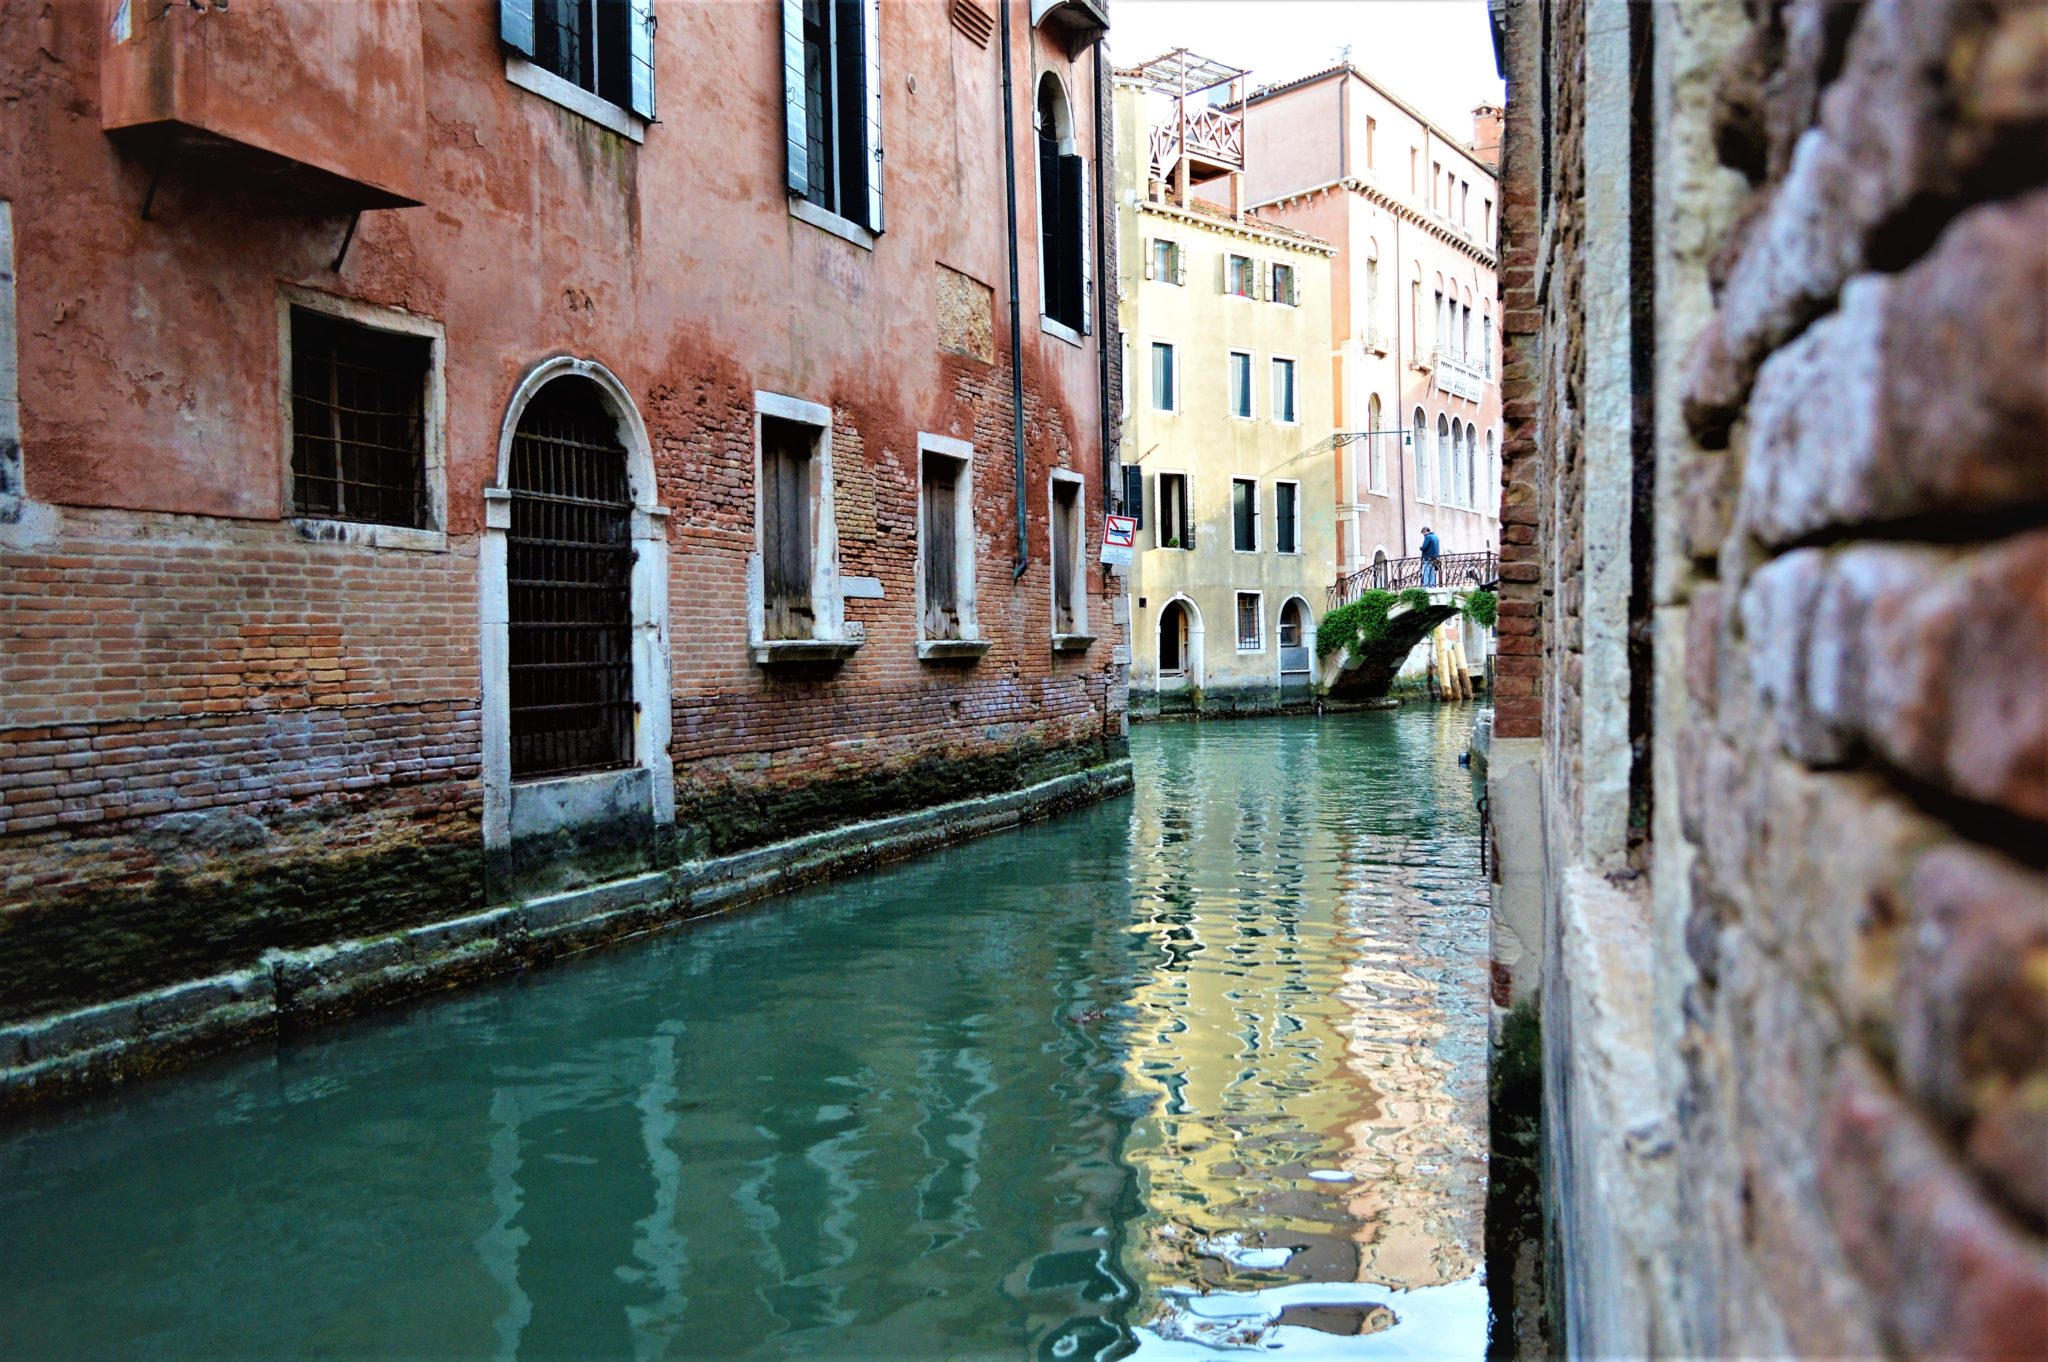 View of canal way, Venice Italy